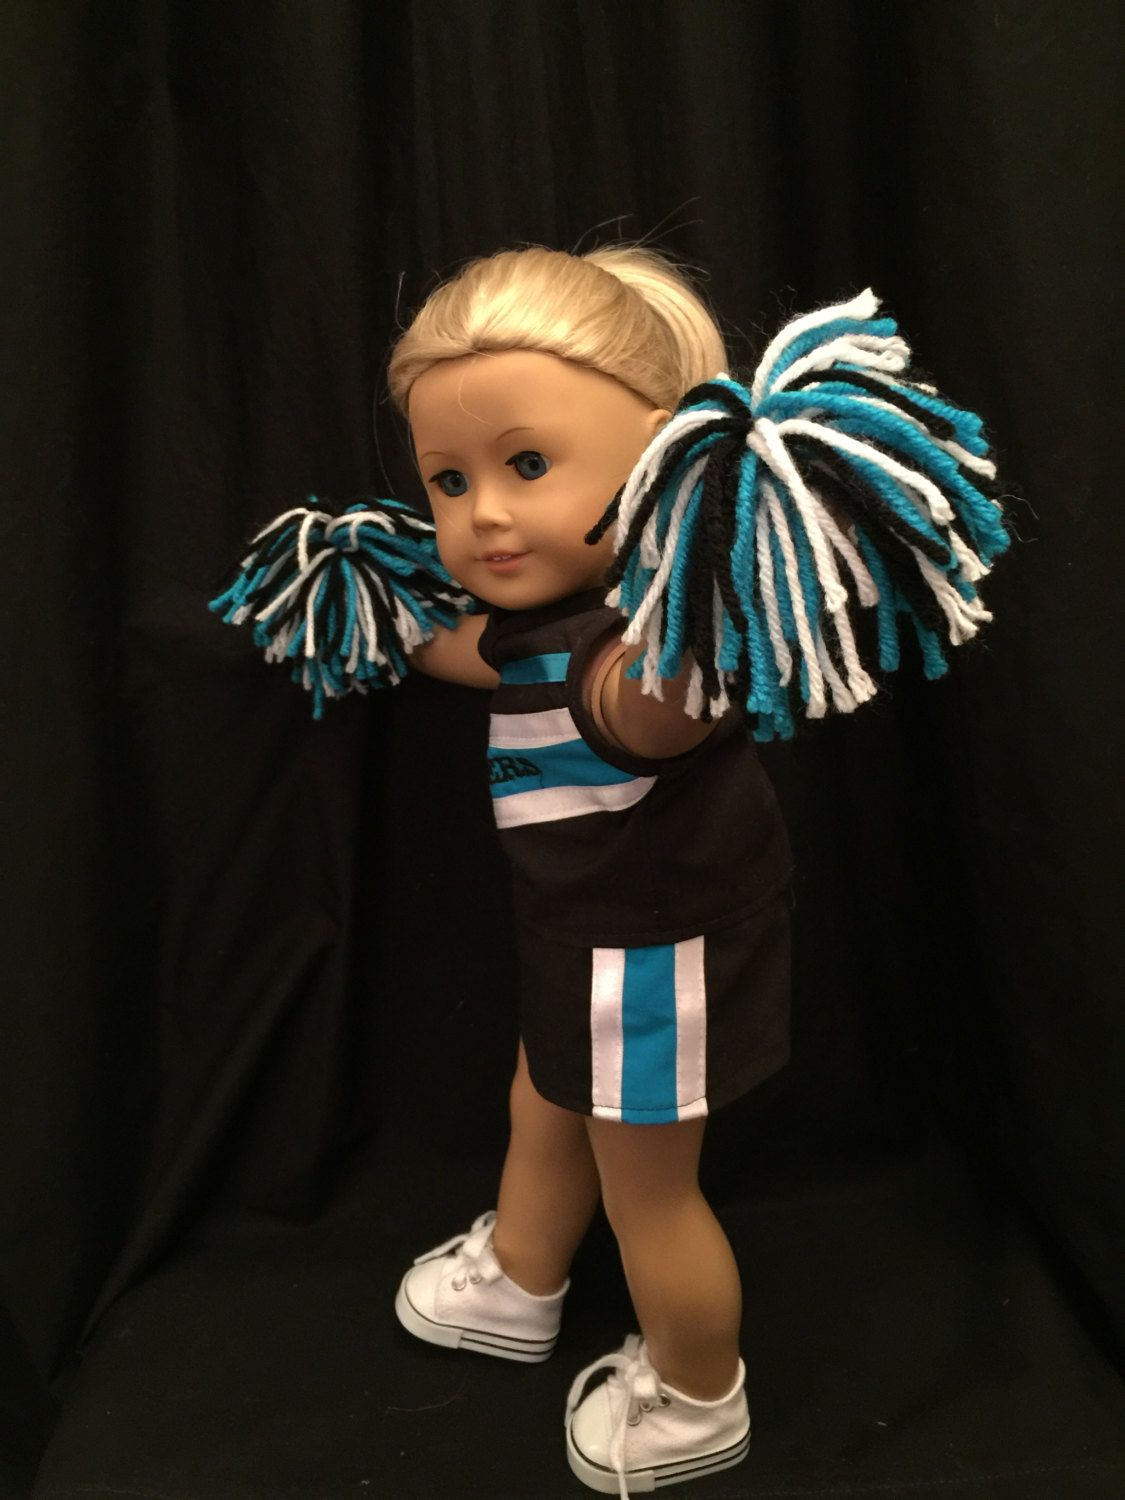 Homemade 18 Inch Doll Panthers Cheerleading Outfit Includes Top, Skirt, Panties, Hair Bow And Pompoms Made From Jelly Bean Soup Pattern #18inchcheerleaderclothes